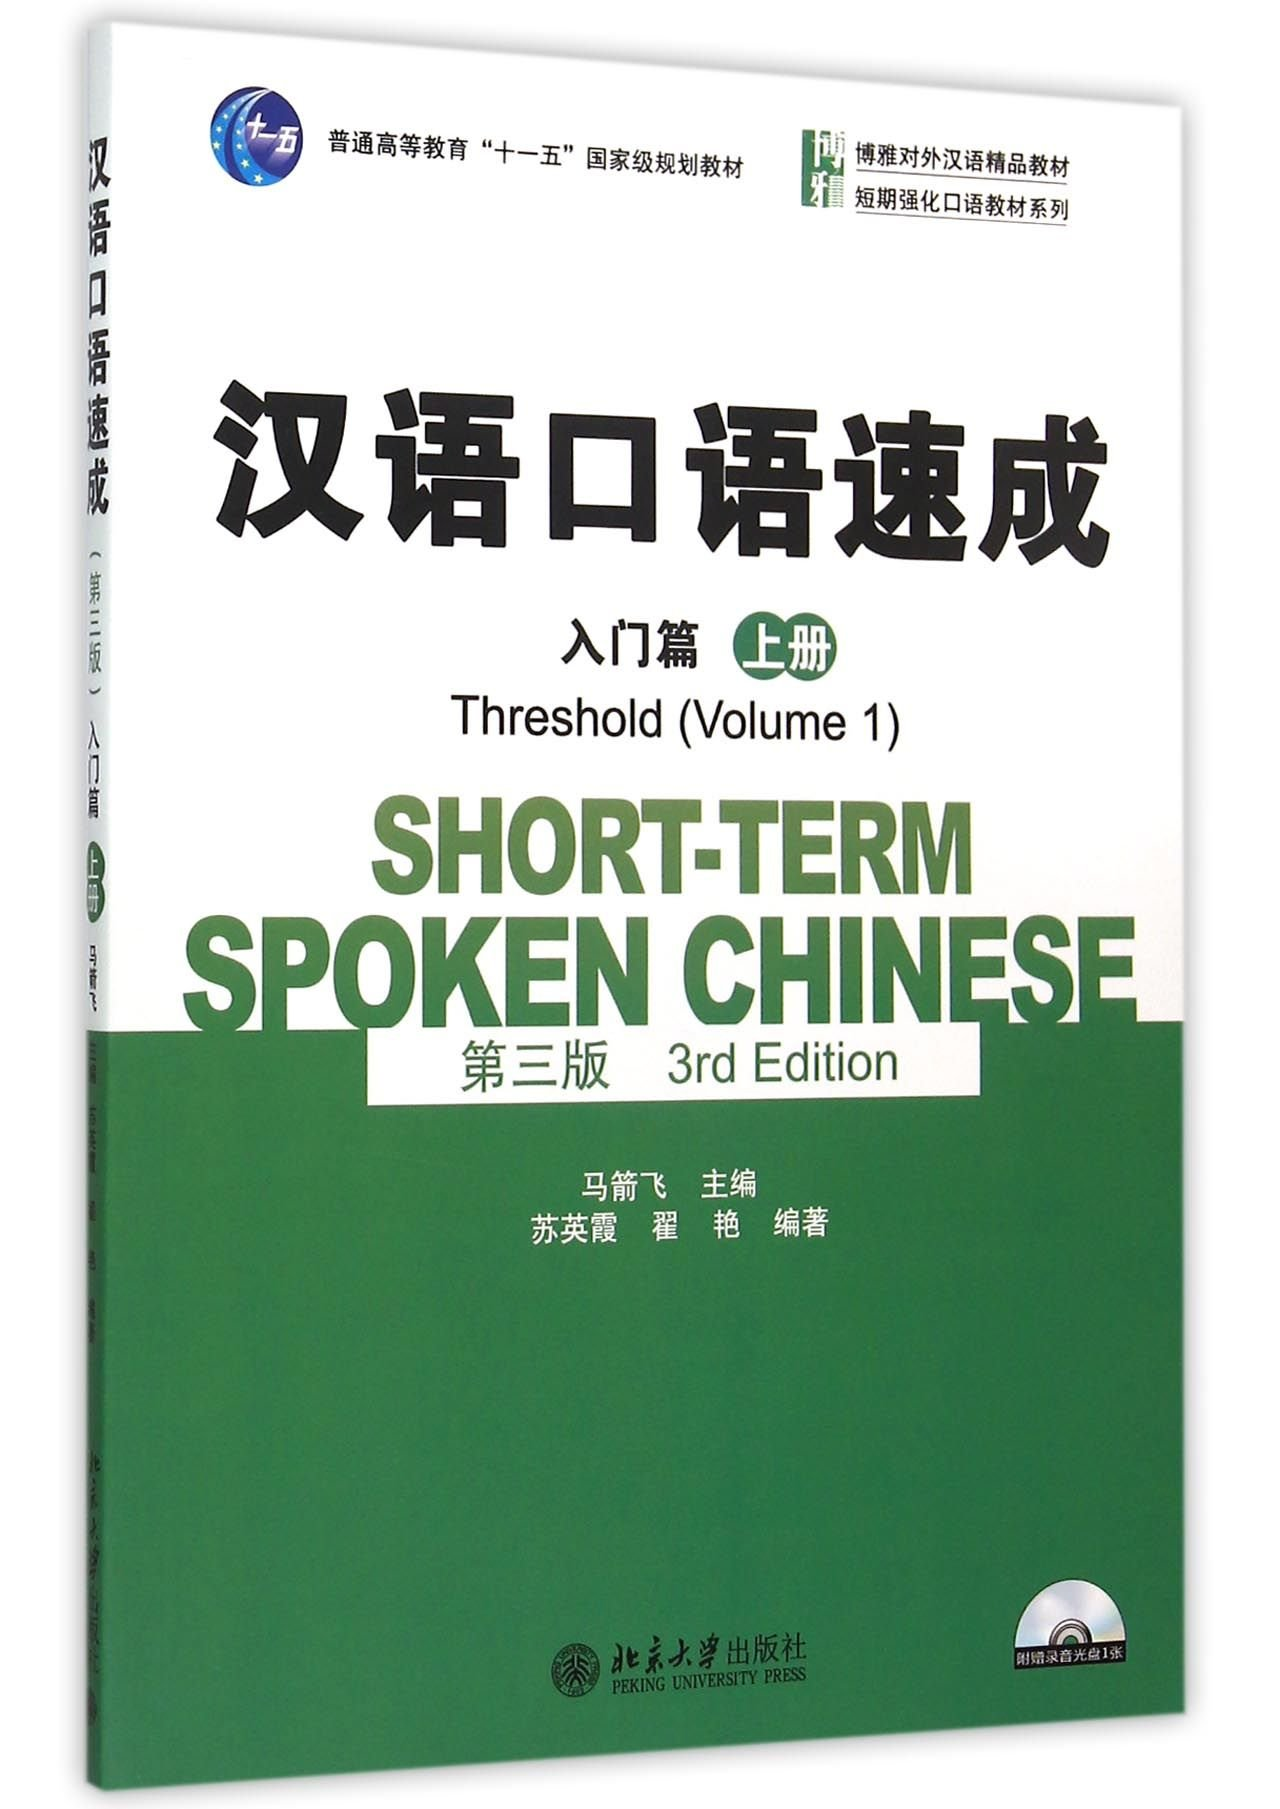 Short-term Spoken Chinese - Threshold vol.1